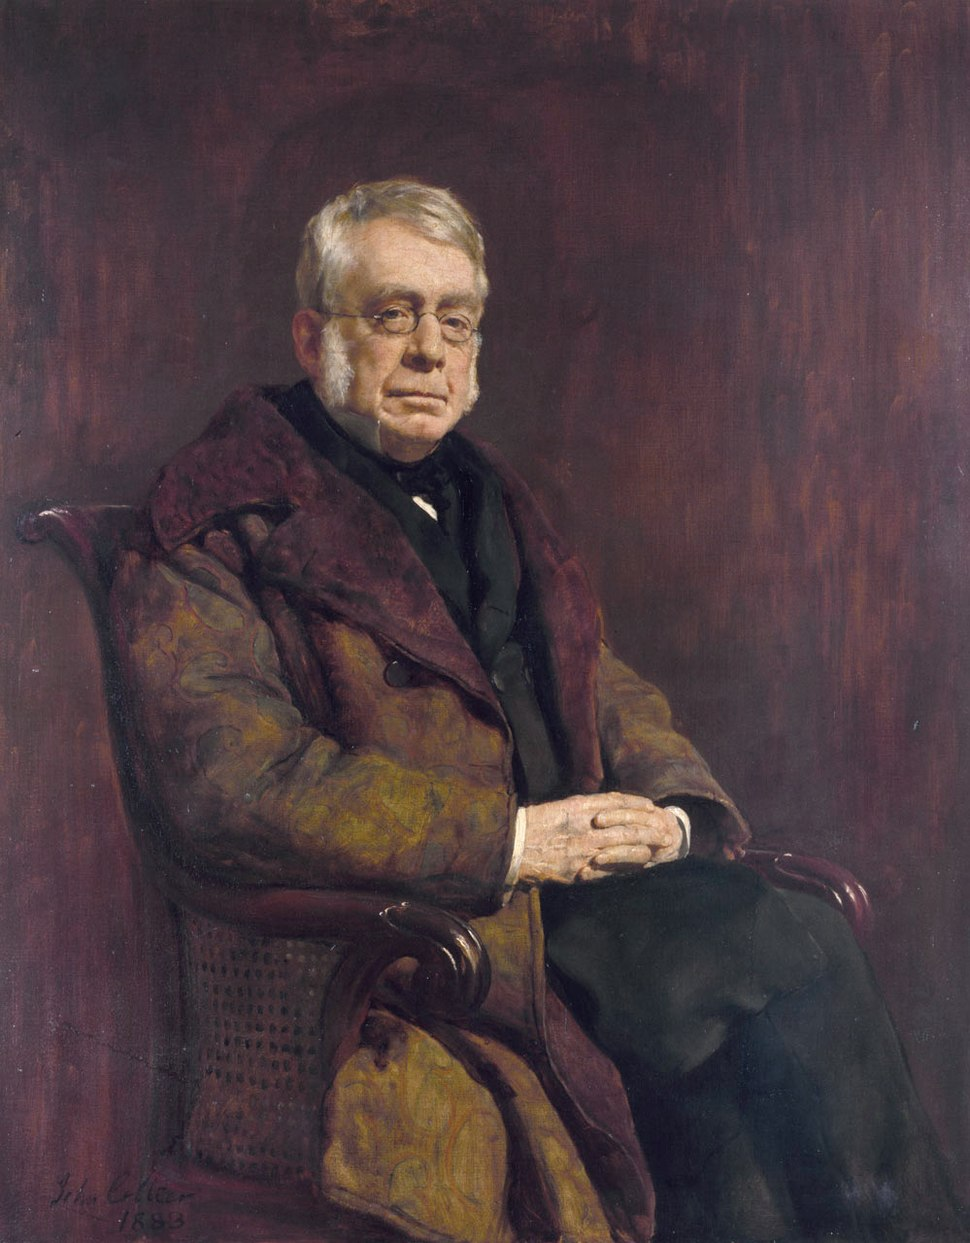 George Biddell Airy (1801-1892), by John Collier